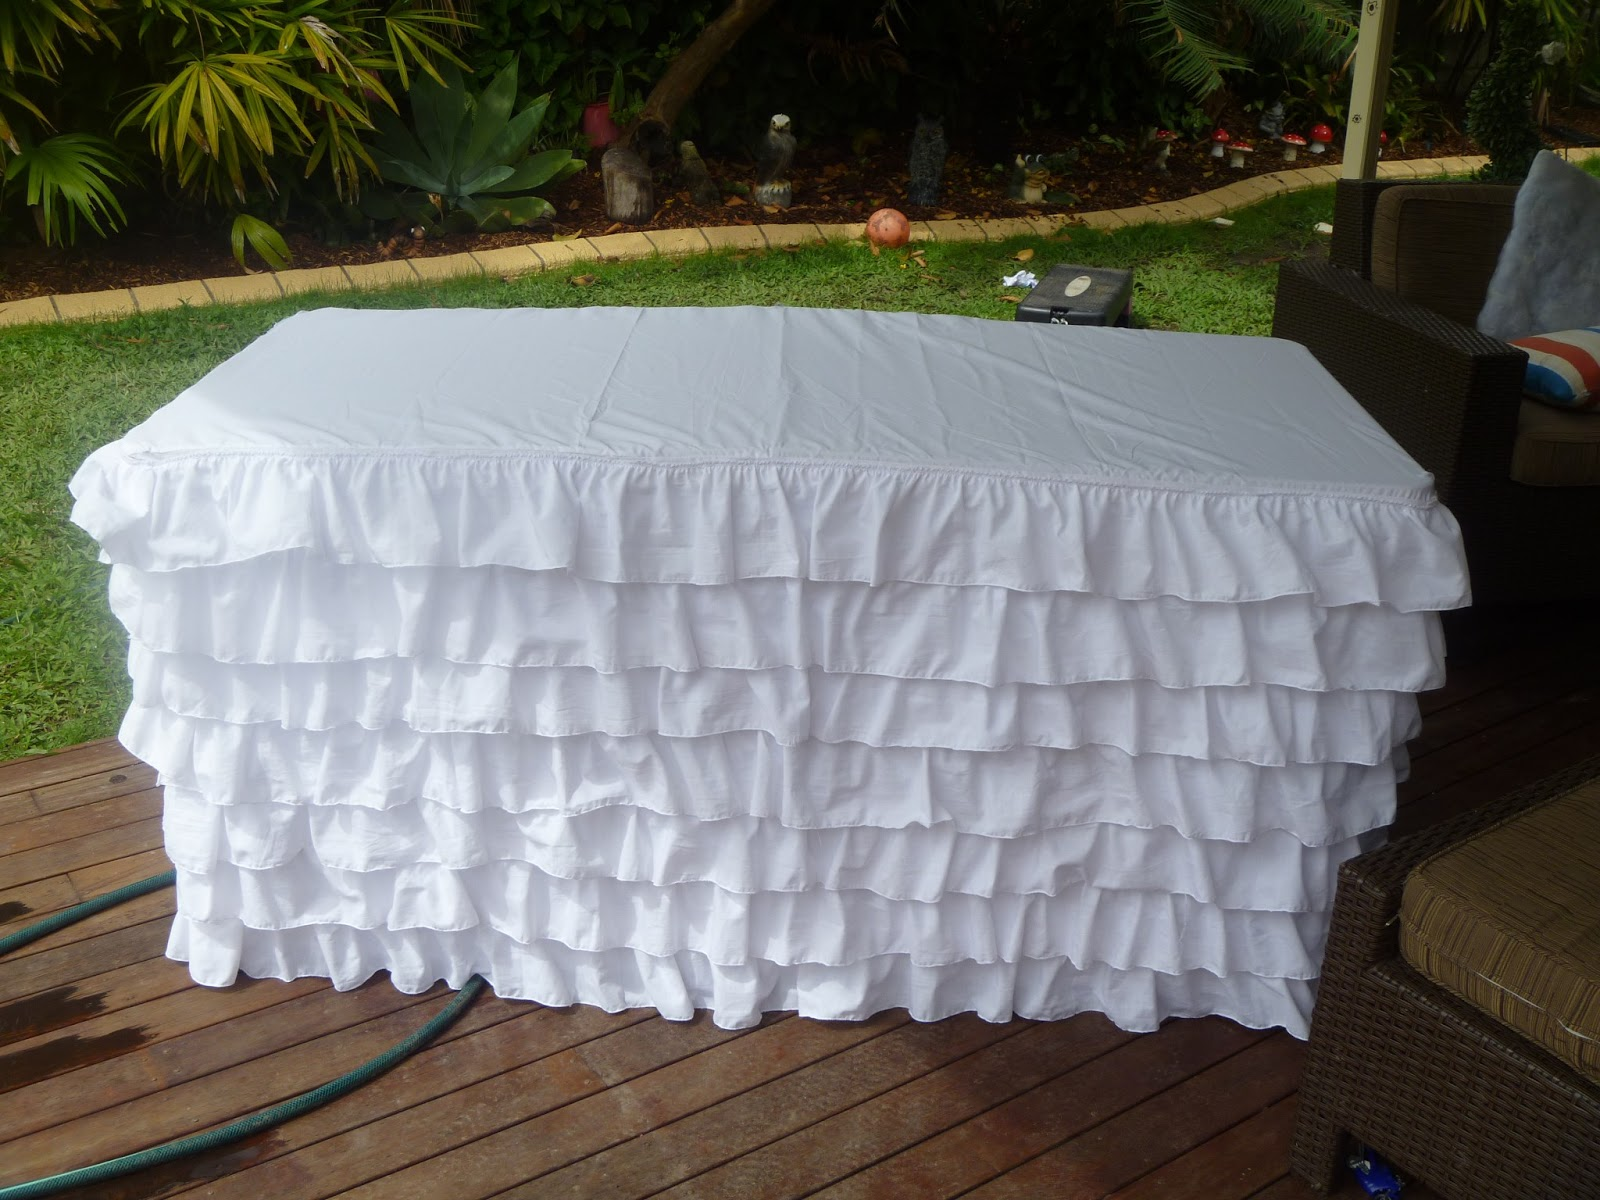 Forever Busy Mum: Making A Table Cover for a Trestle Table Ruffled Tablecloth